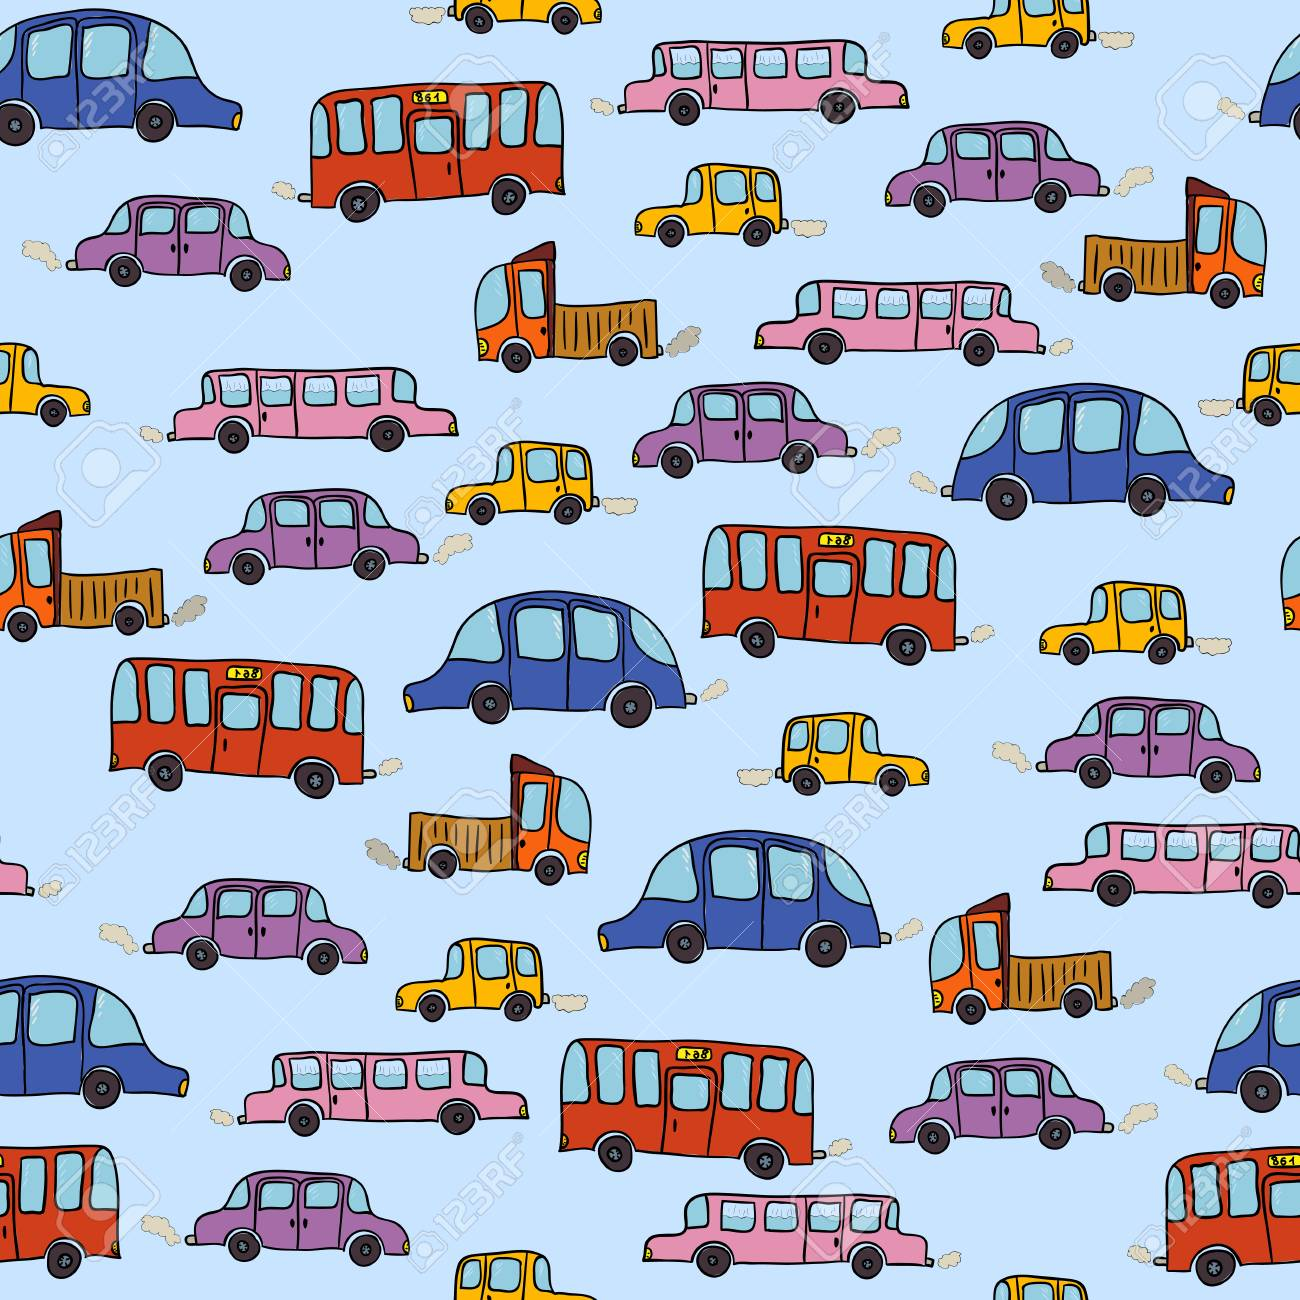 Colorful Cartoon Cars Seamless Pattern Background With Hand Drawn